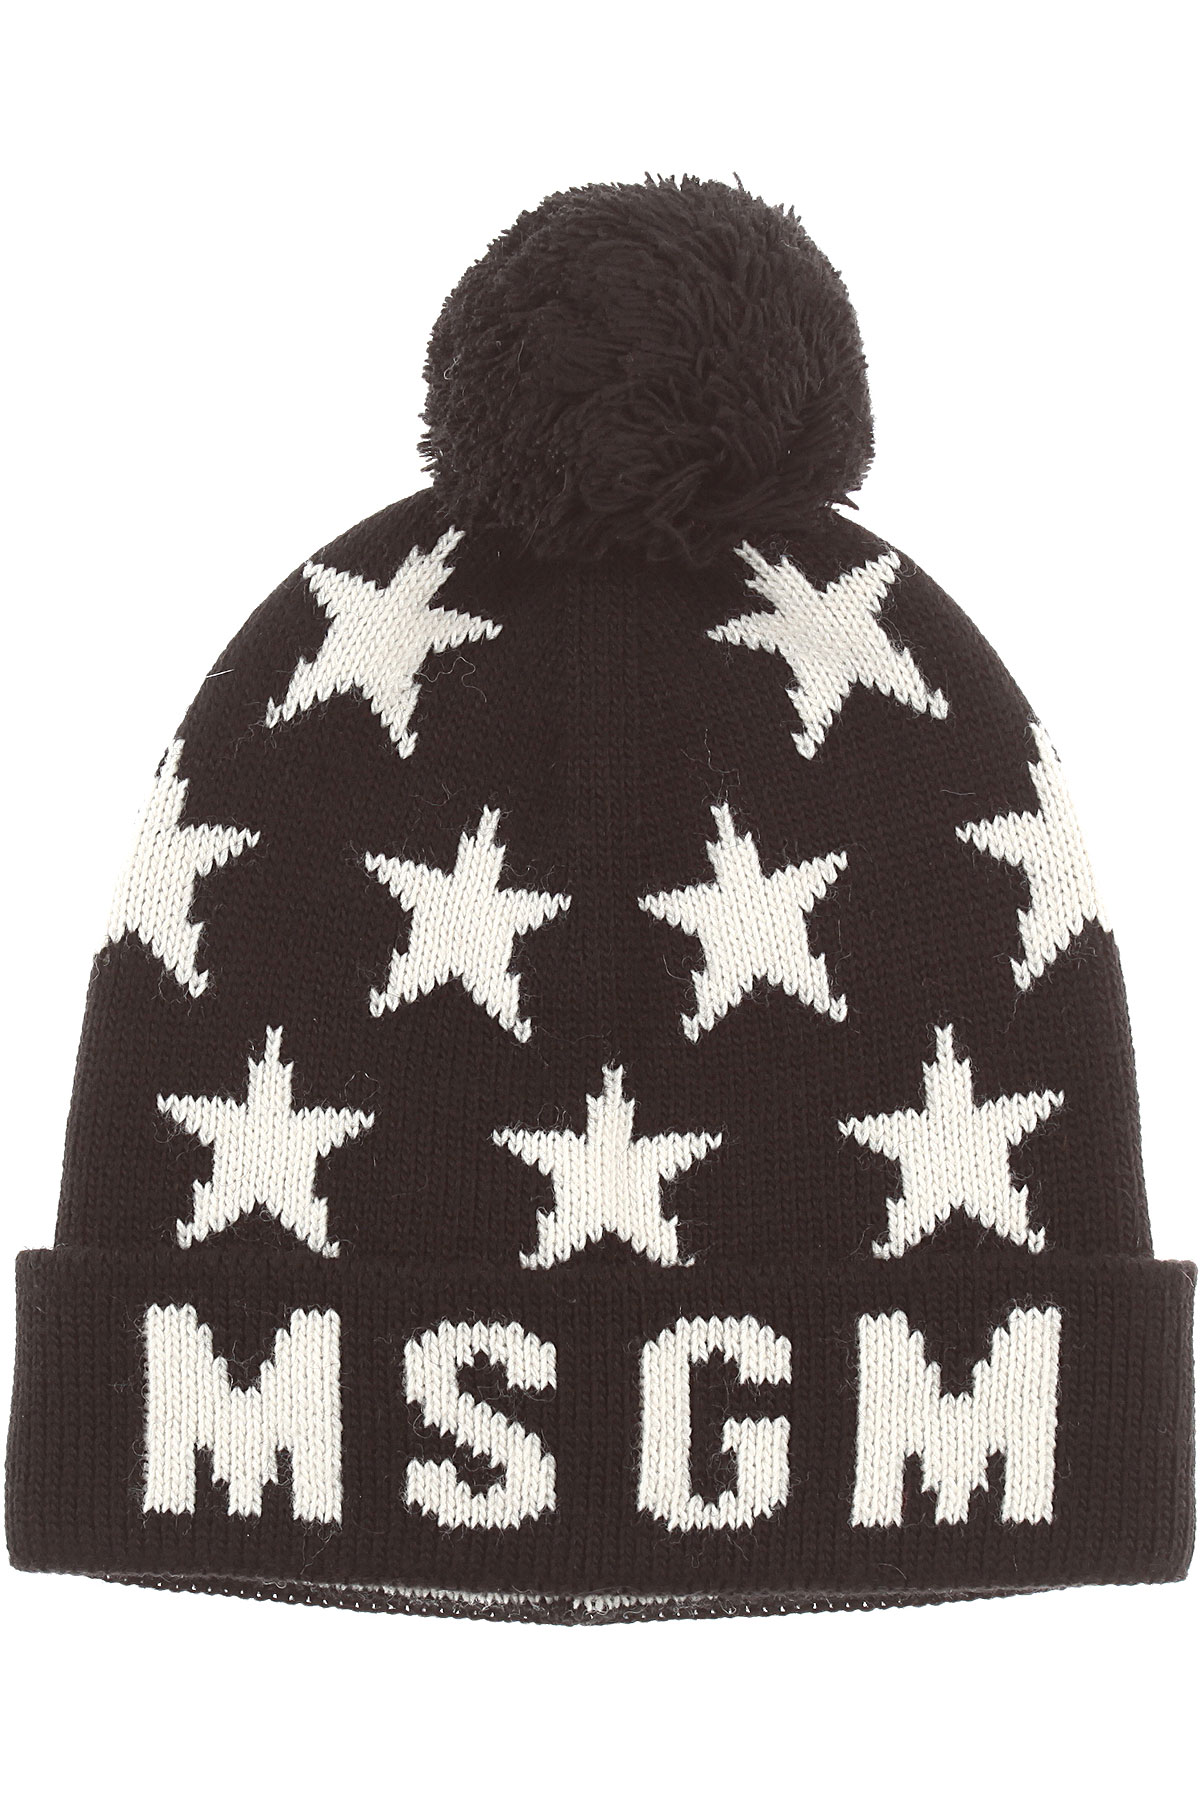 MSGM Kids Hats for Girls On Sale, Black, Acrylic, 2017